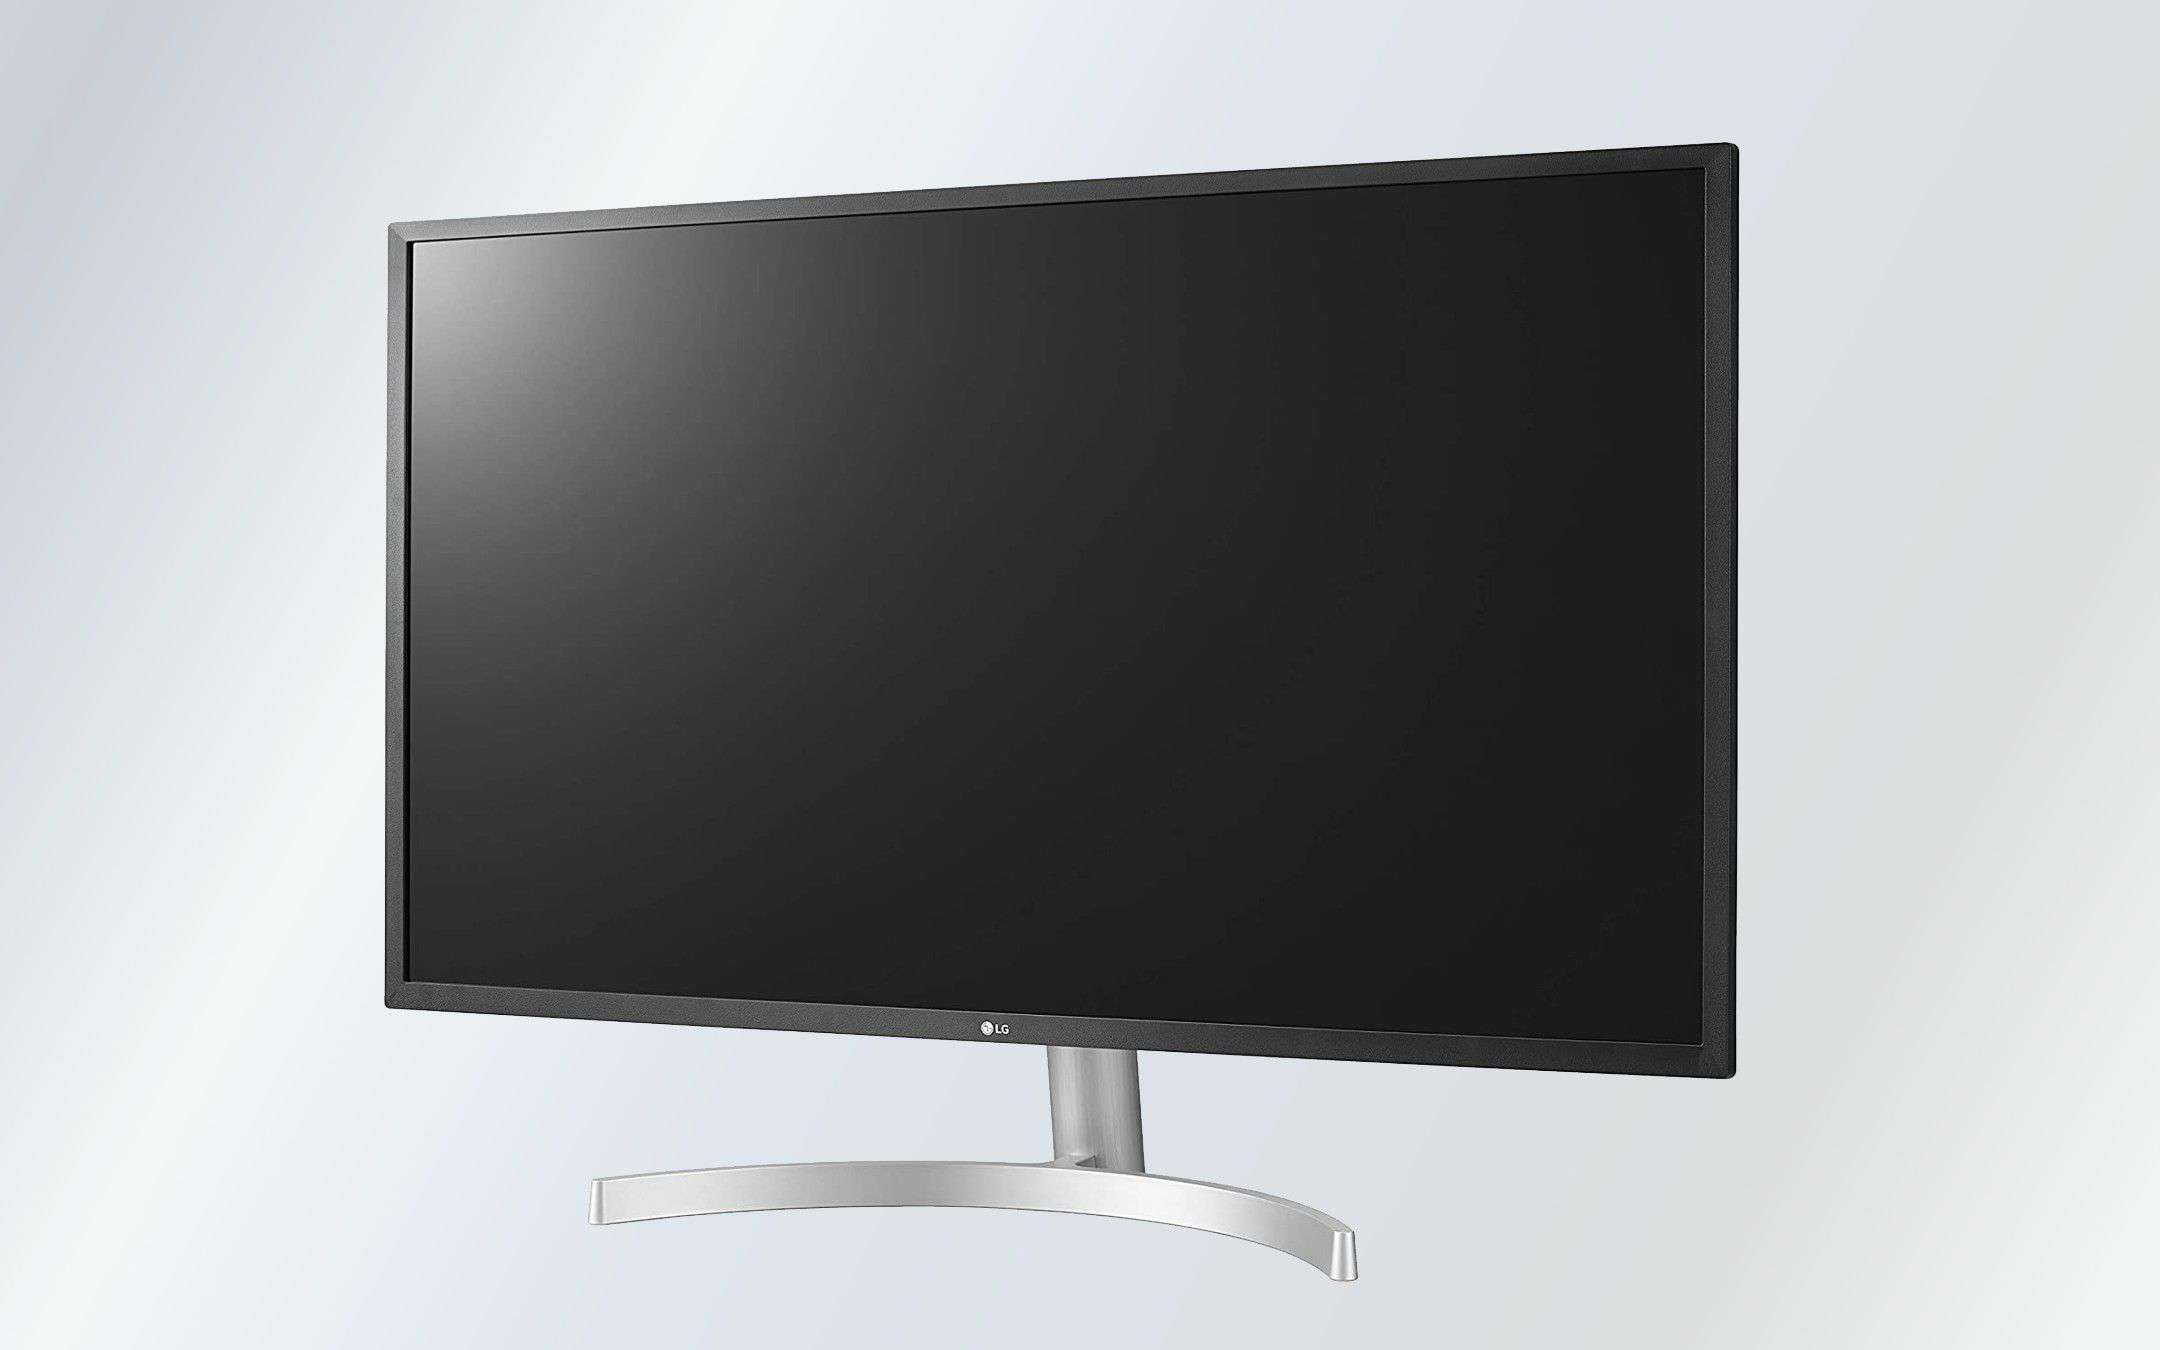 LG monitors: 24 to 32 inches, 33 to 40% off